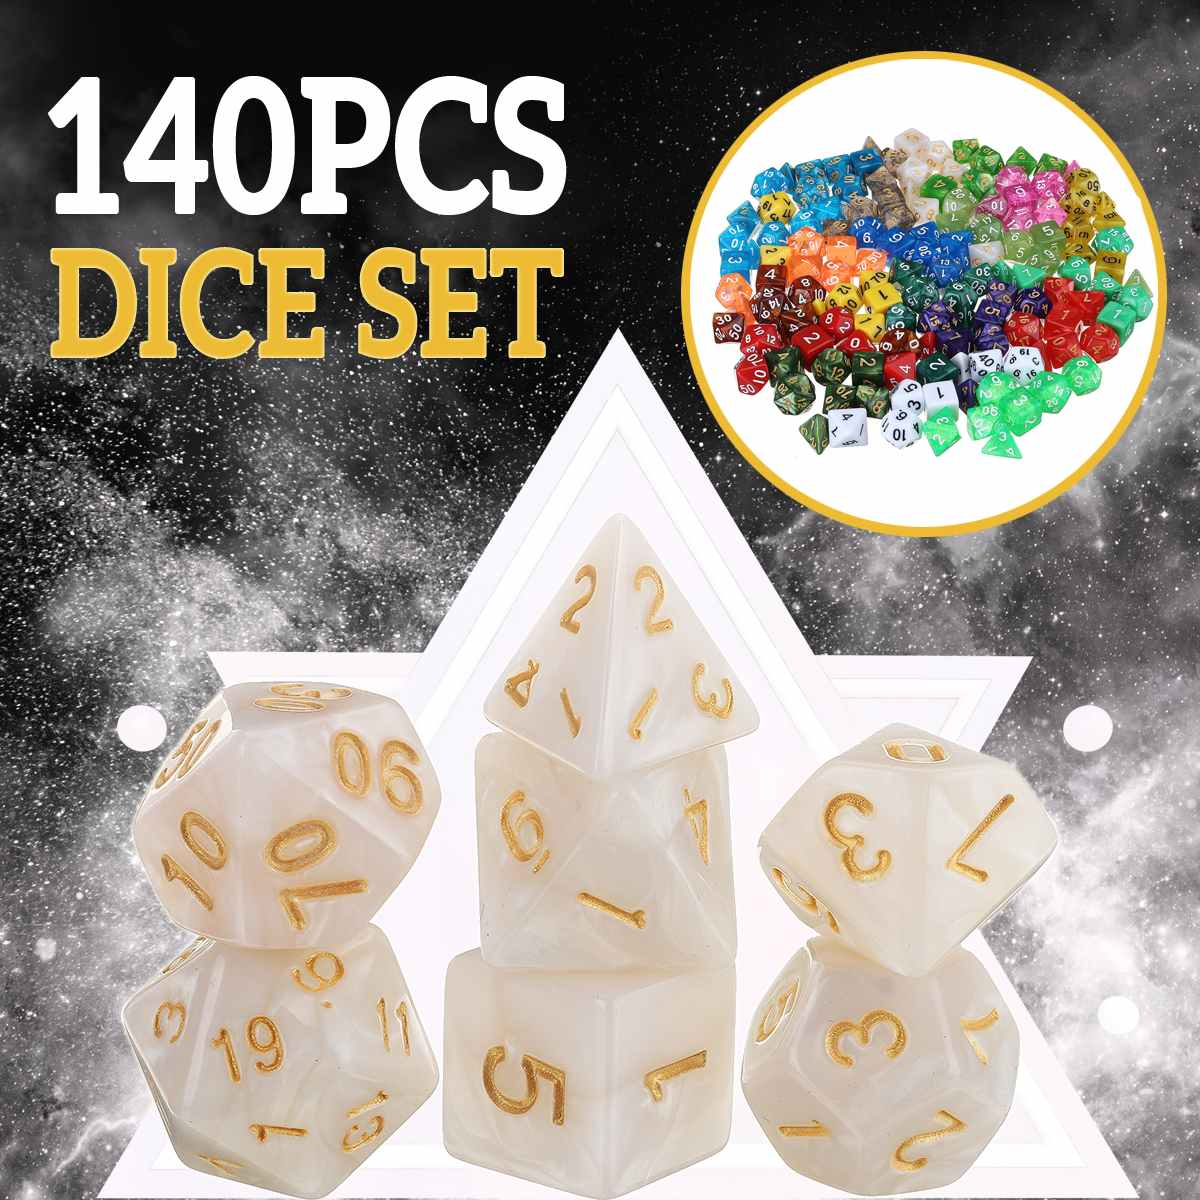 140pcs Metal Polyhedral Glitter Dice Mult-sided RPG Dice Include Dice Pouch D4 D6 D8 D10 D12 D20 Dungeons And Dragons Table Game